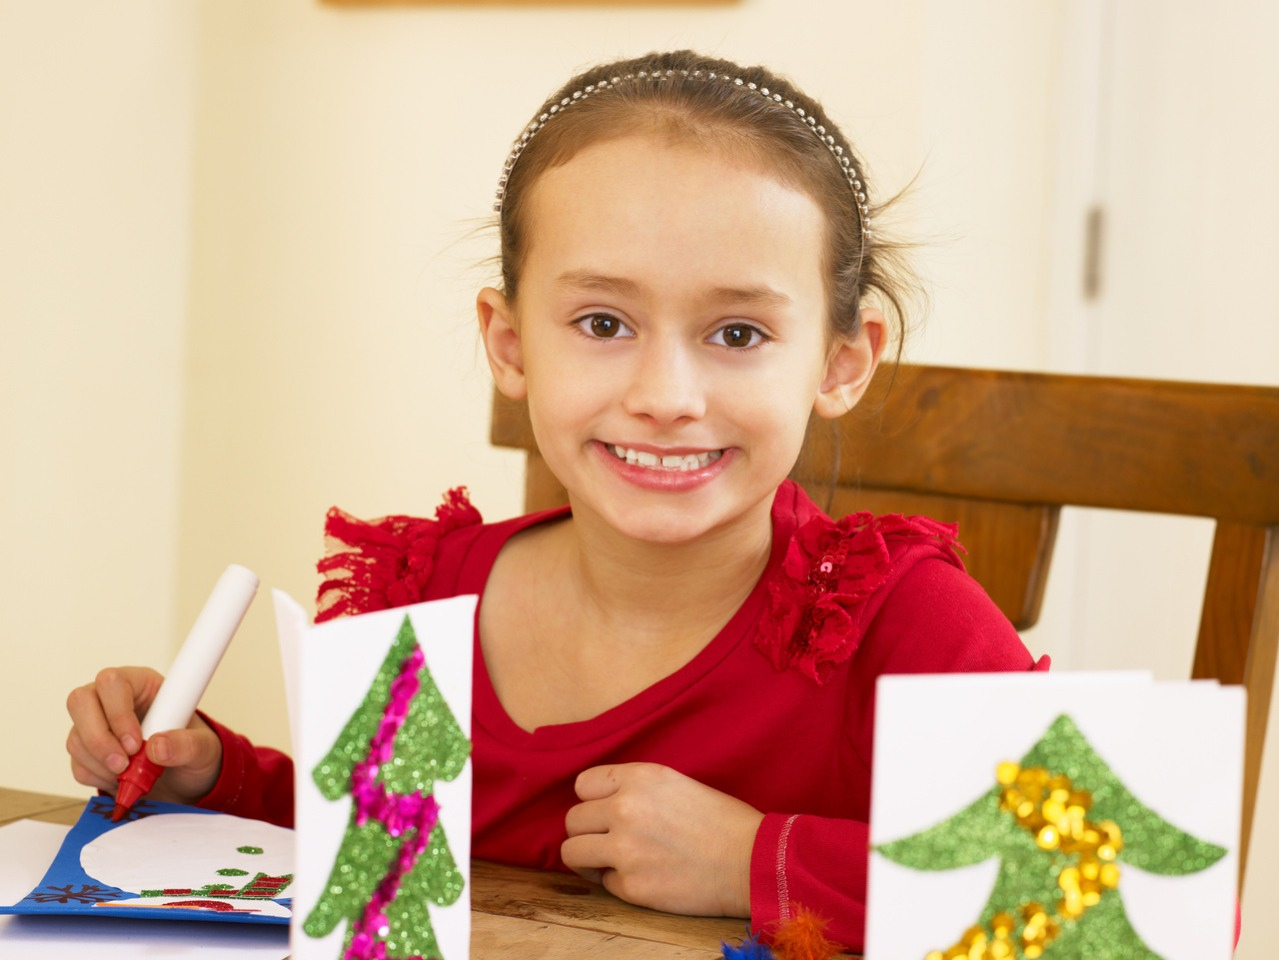 Make gifts with kids - you don't even need your own.  If you have nieces or nephews or offer to watch a friend's kids and set up different crafts to make.  You can make ornaments, treats or homemade gifts.  This Is also a great experience for kids and to talk about the gift of giving and family.